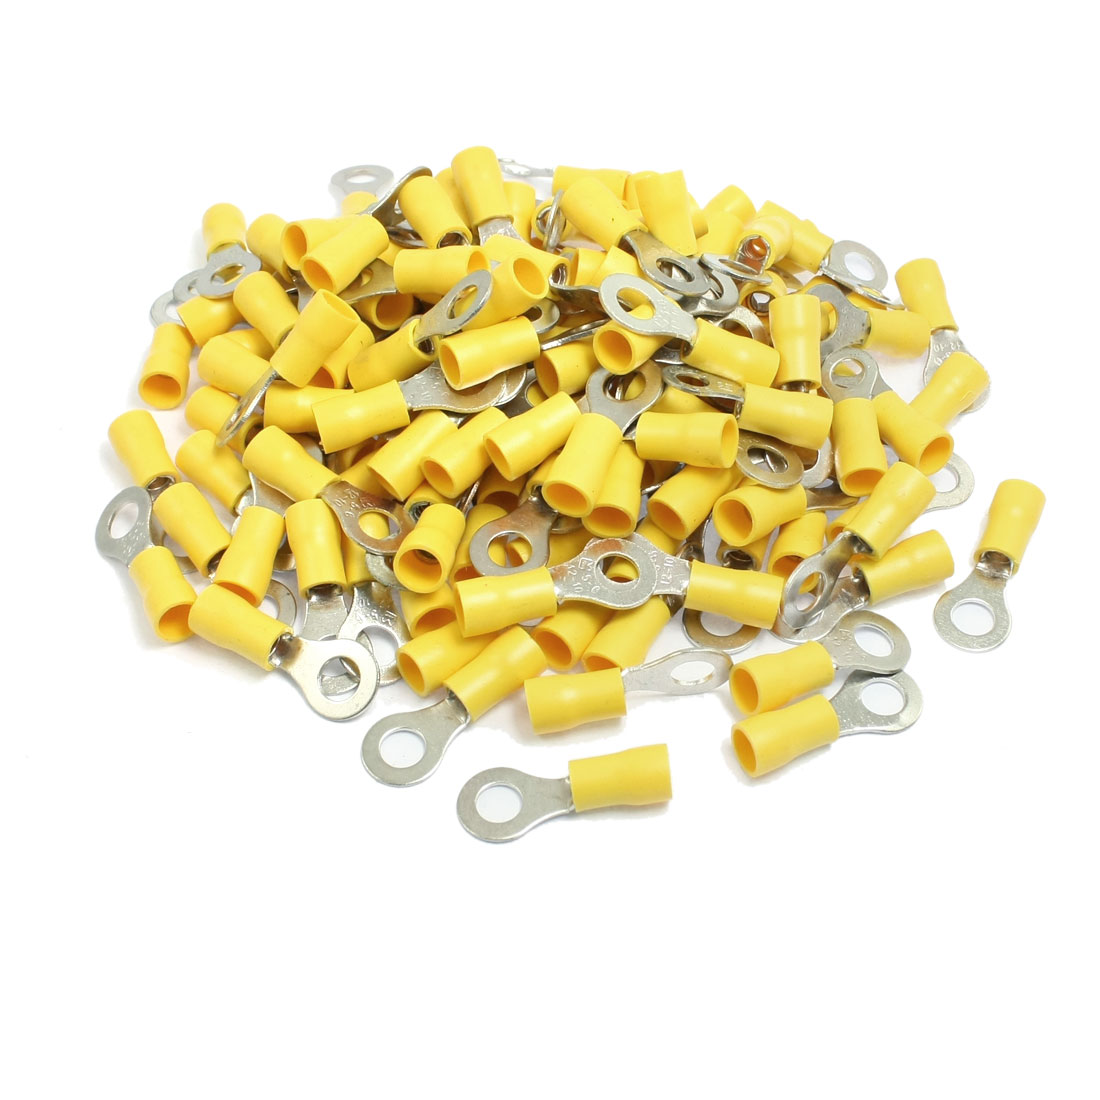 200 Pcs RV5.5-6 AWG 12-10 Yellow Sleeve Pre Insulated Ring Terminals Connectors